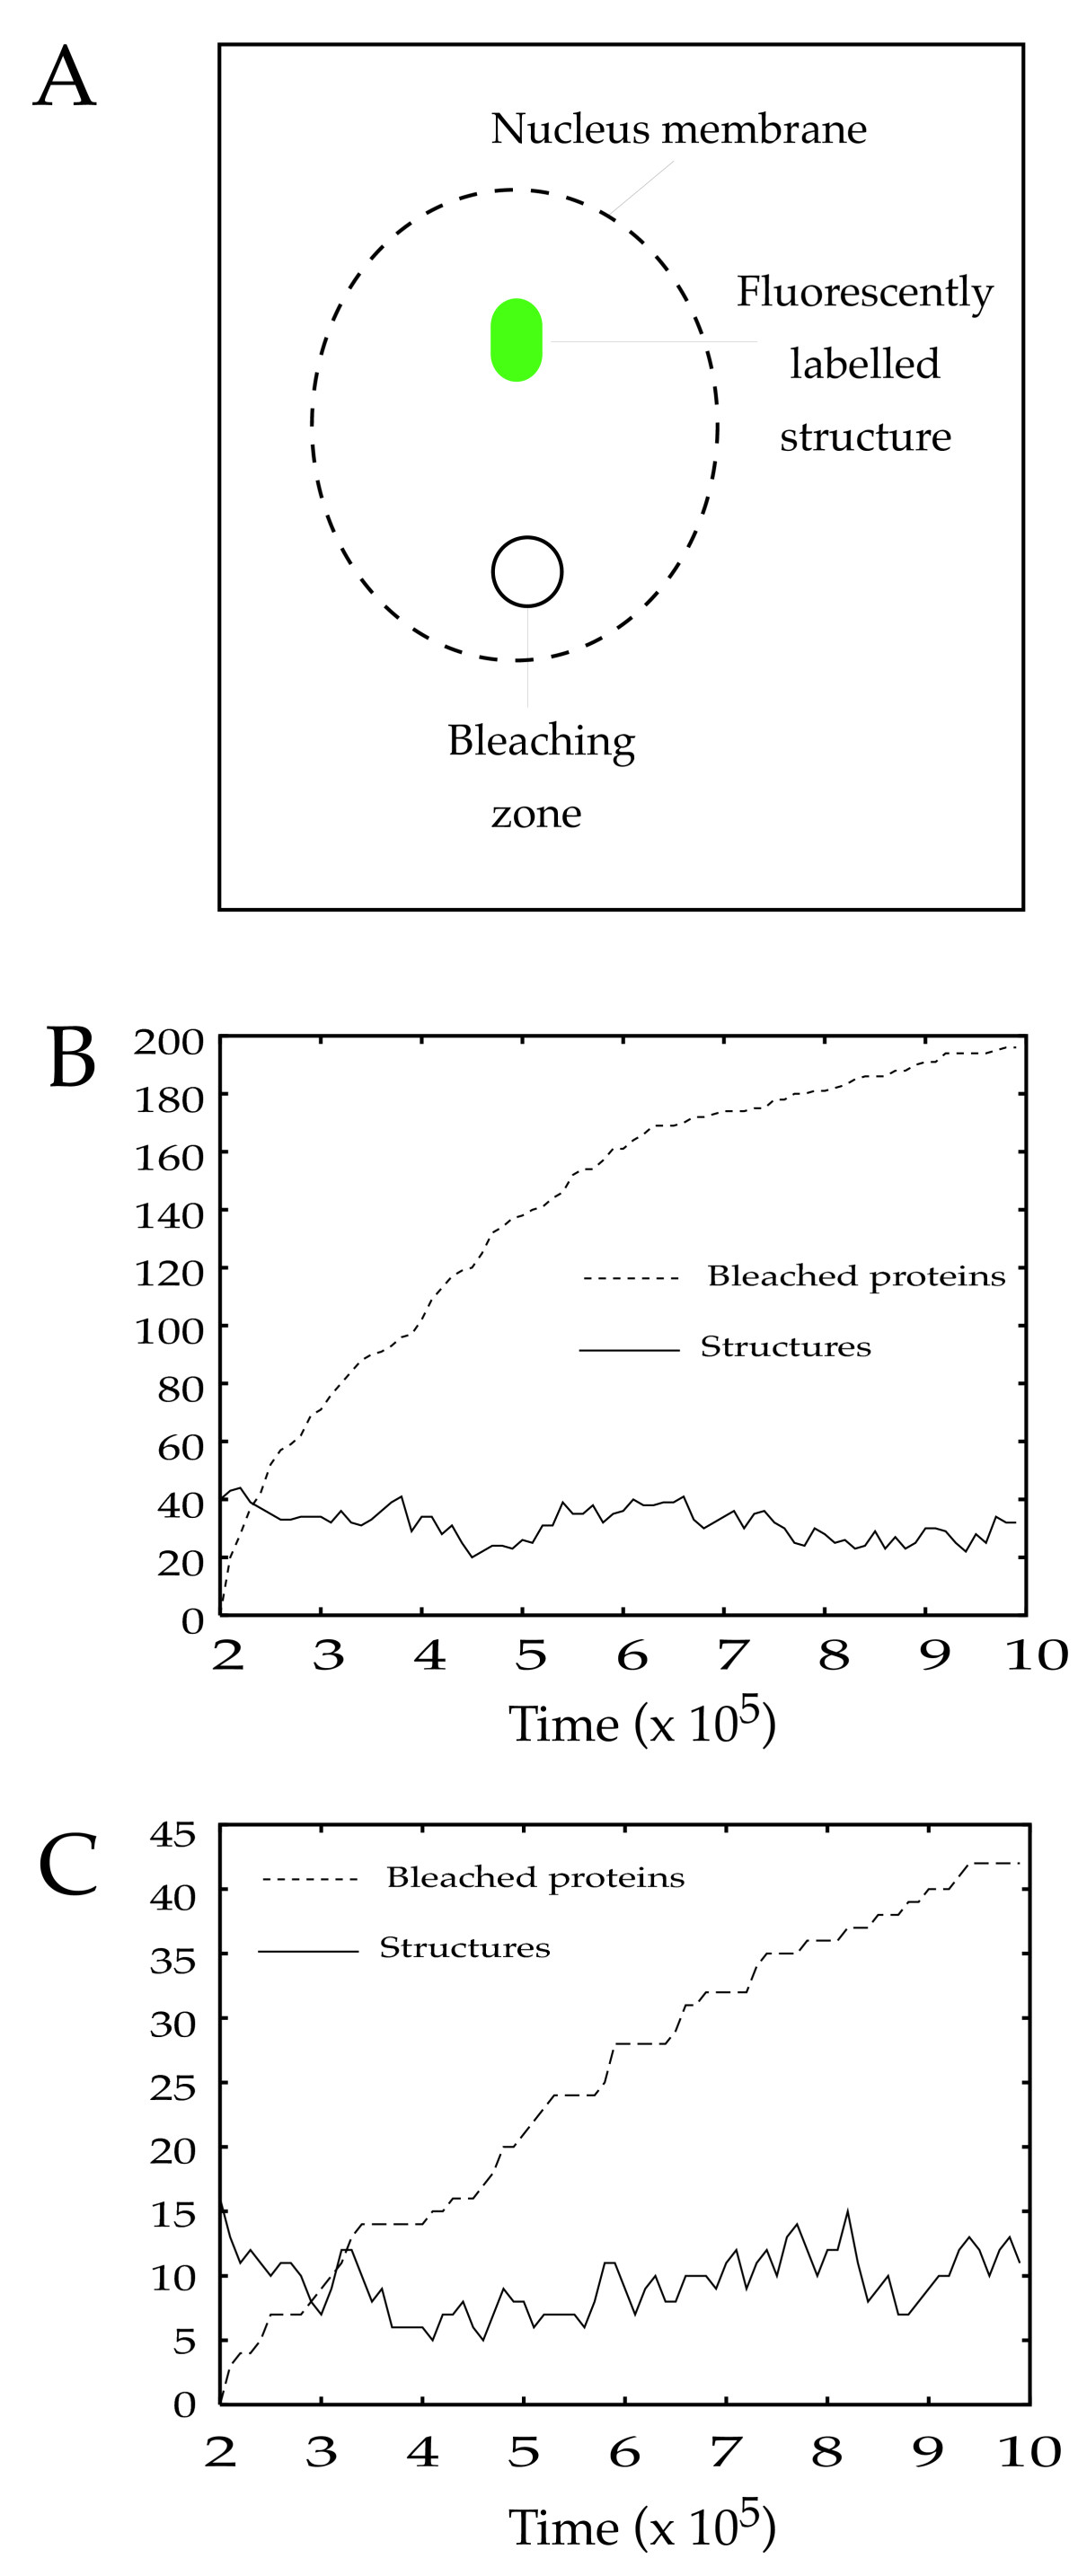 https://static-content.springer.com/image/art%3A10.1186%2F1471-2105-6-228/MediaObjects/12859_2005_Article_553_Fig5_HTML.jpg